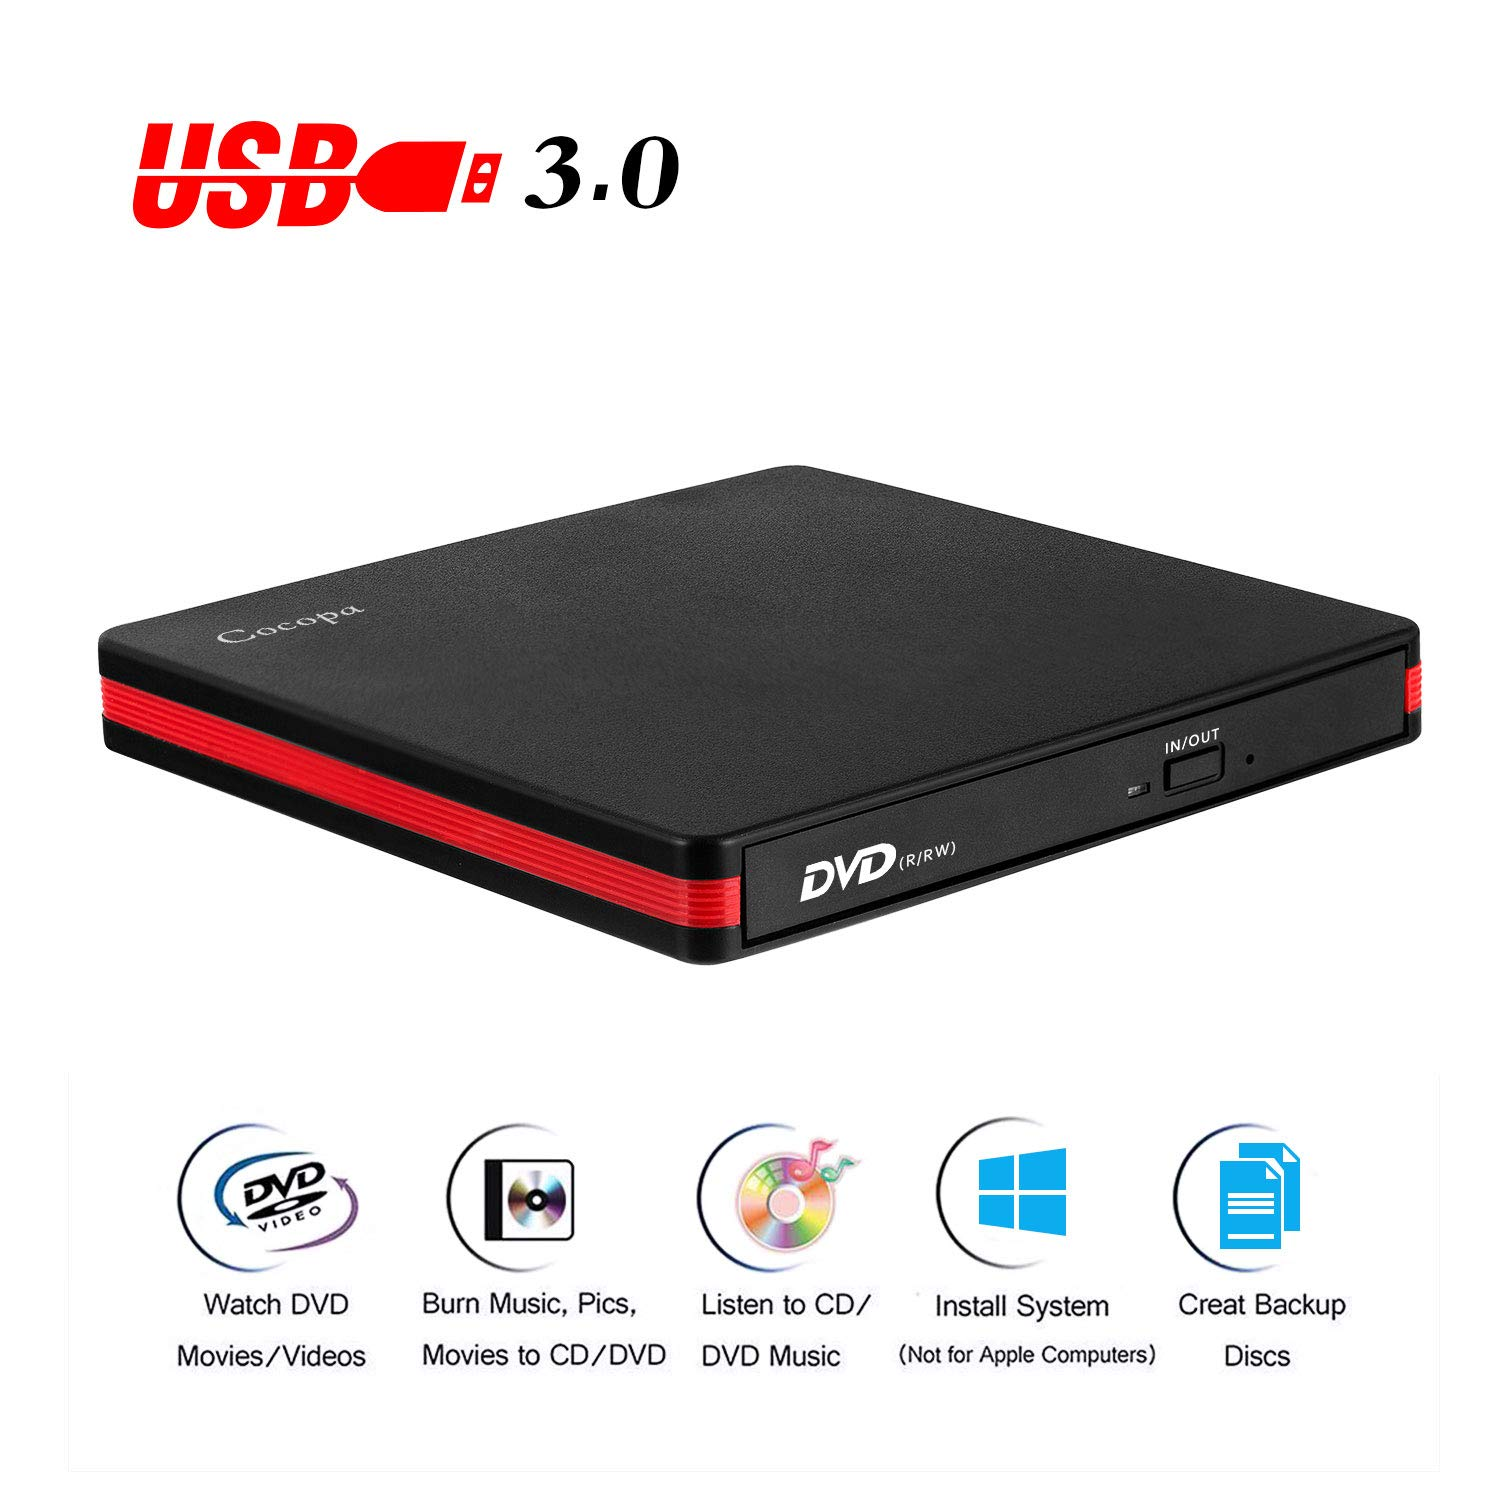 Cocopa External CD DVD Drive USB 3.0 Portable CD DVD +/-RW Drive Slim DVD/CD ROM Rewriter Burner Writer, High Speed Data Compatible with Laptop Desktop MacBook Windows10/8/7/XP/Vista/Mac OS(RED) by Cocopa